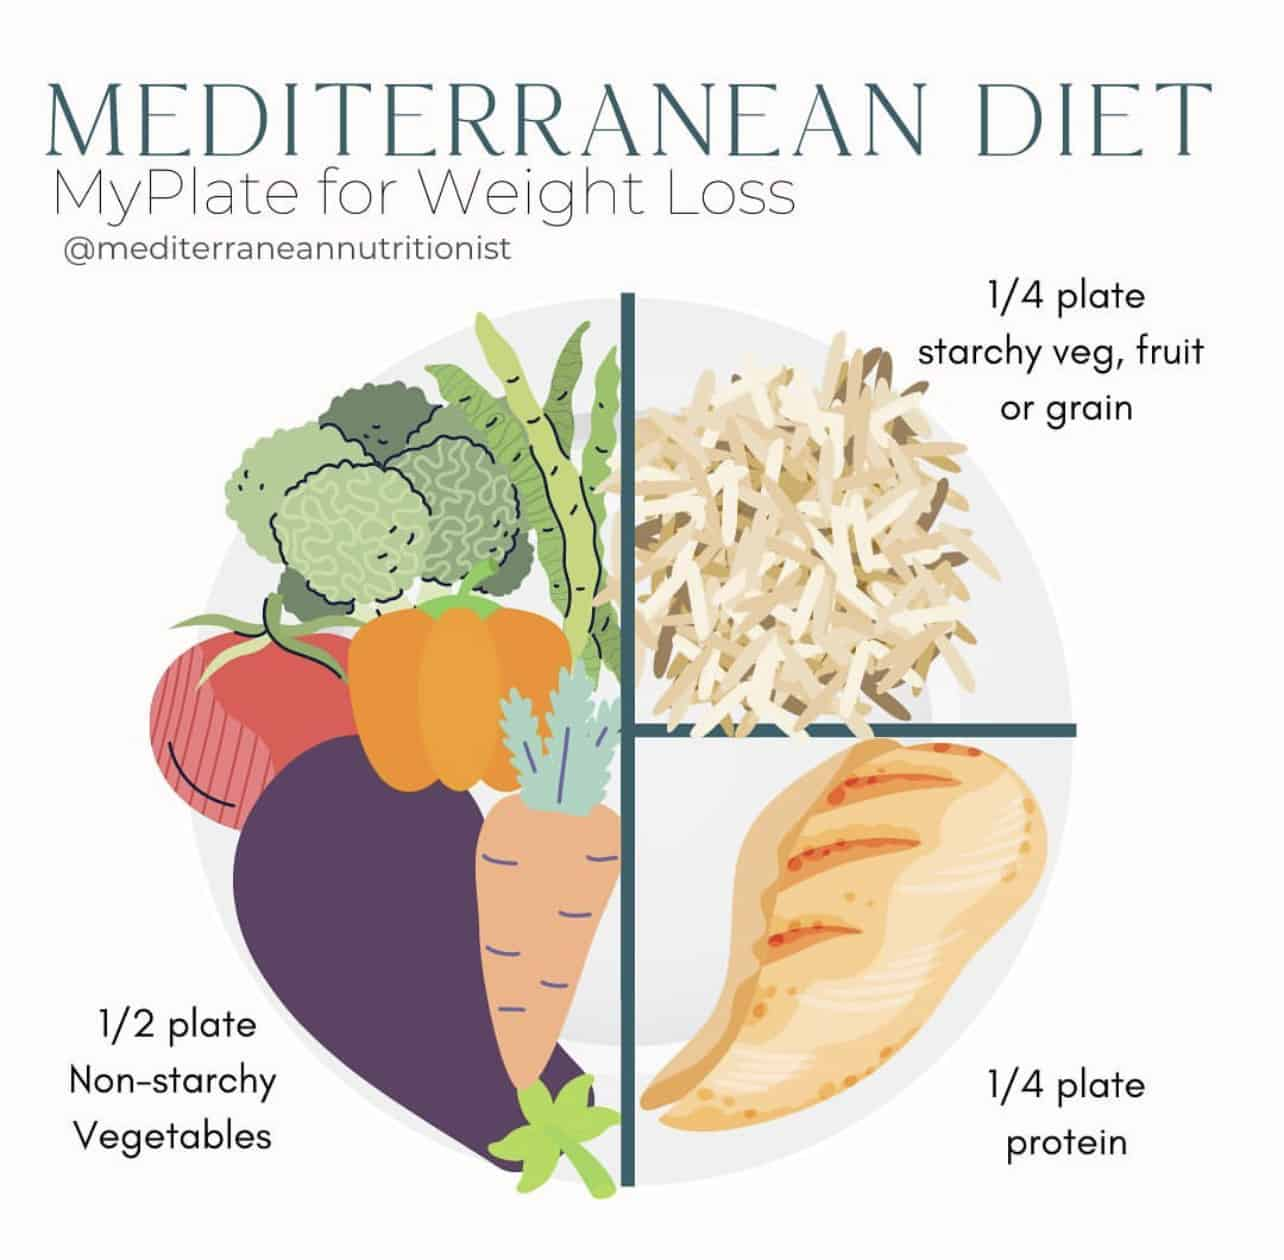 Photo of a plate and veggies, fruit, grains and protein in portions on it